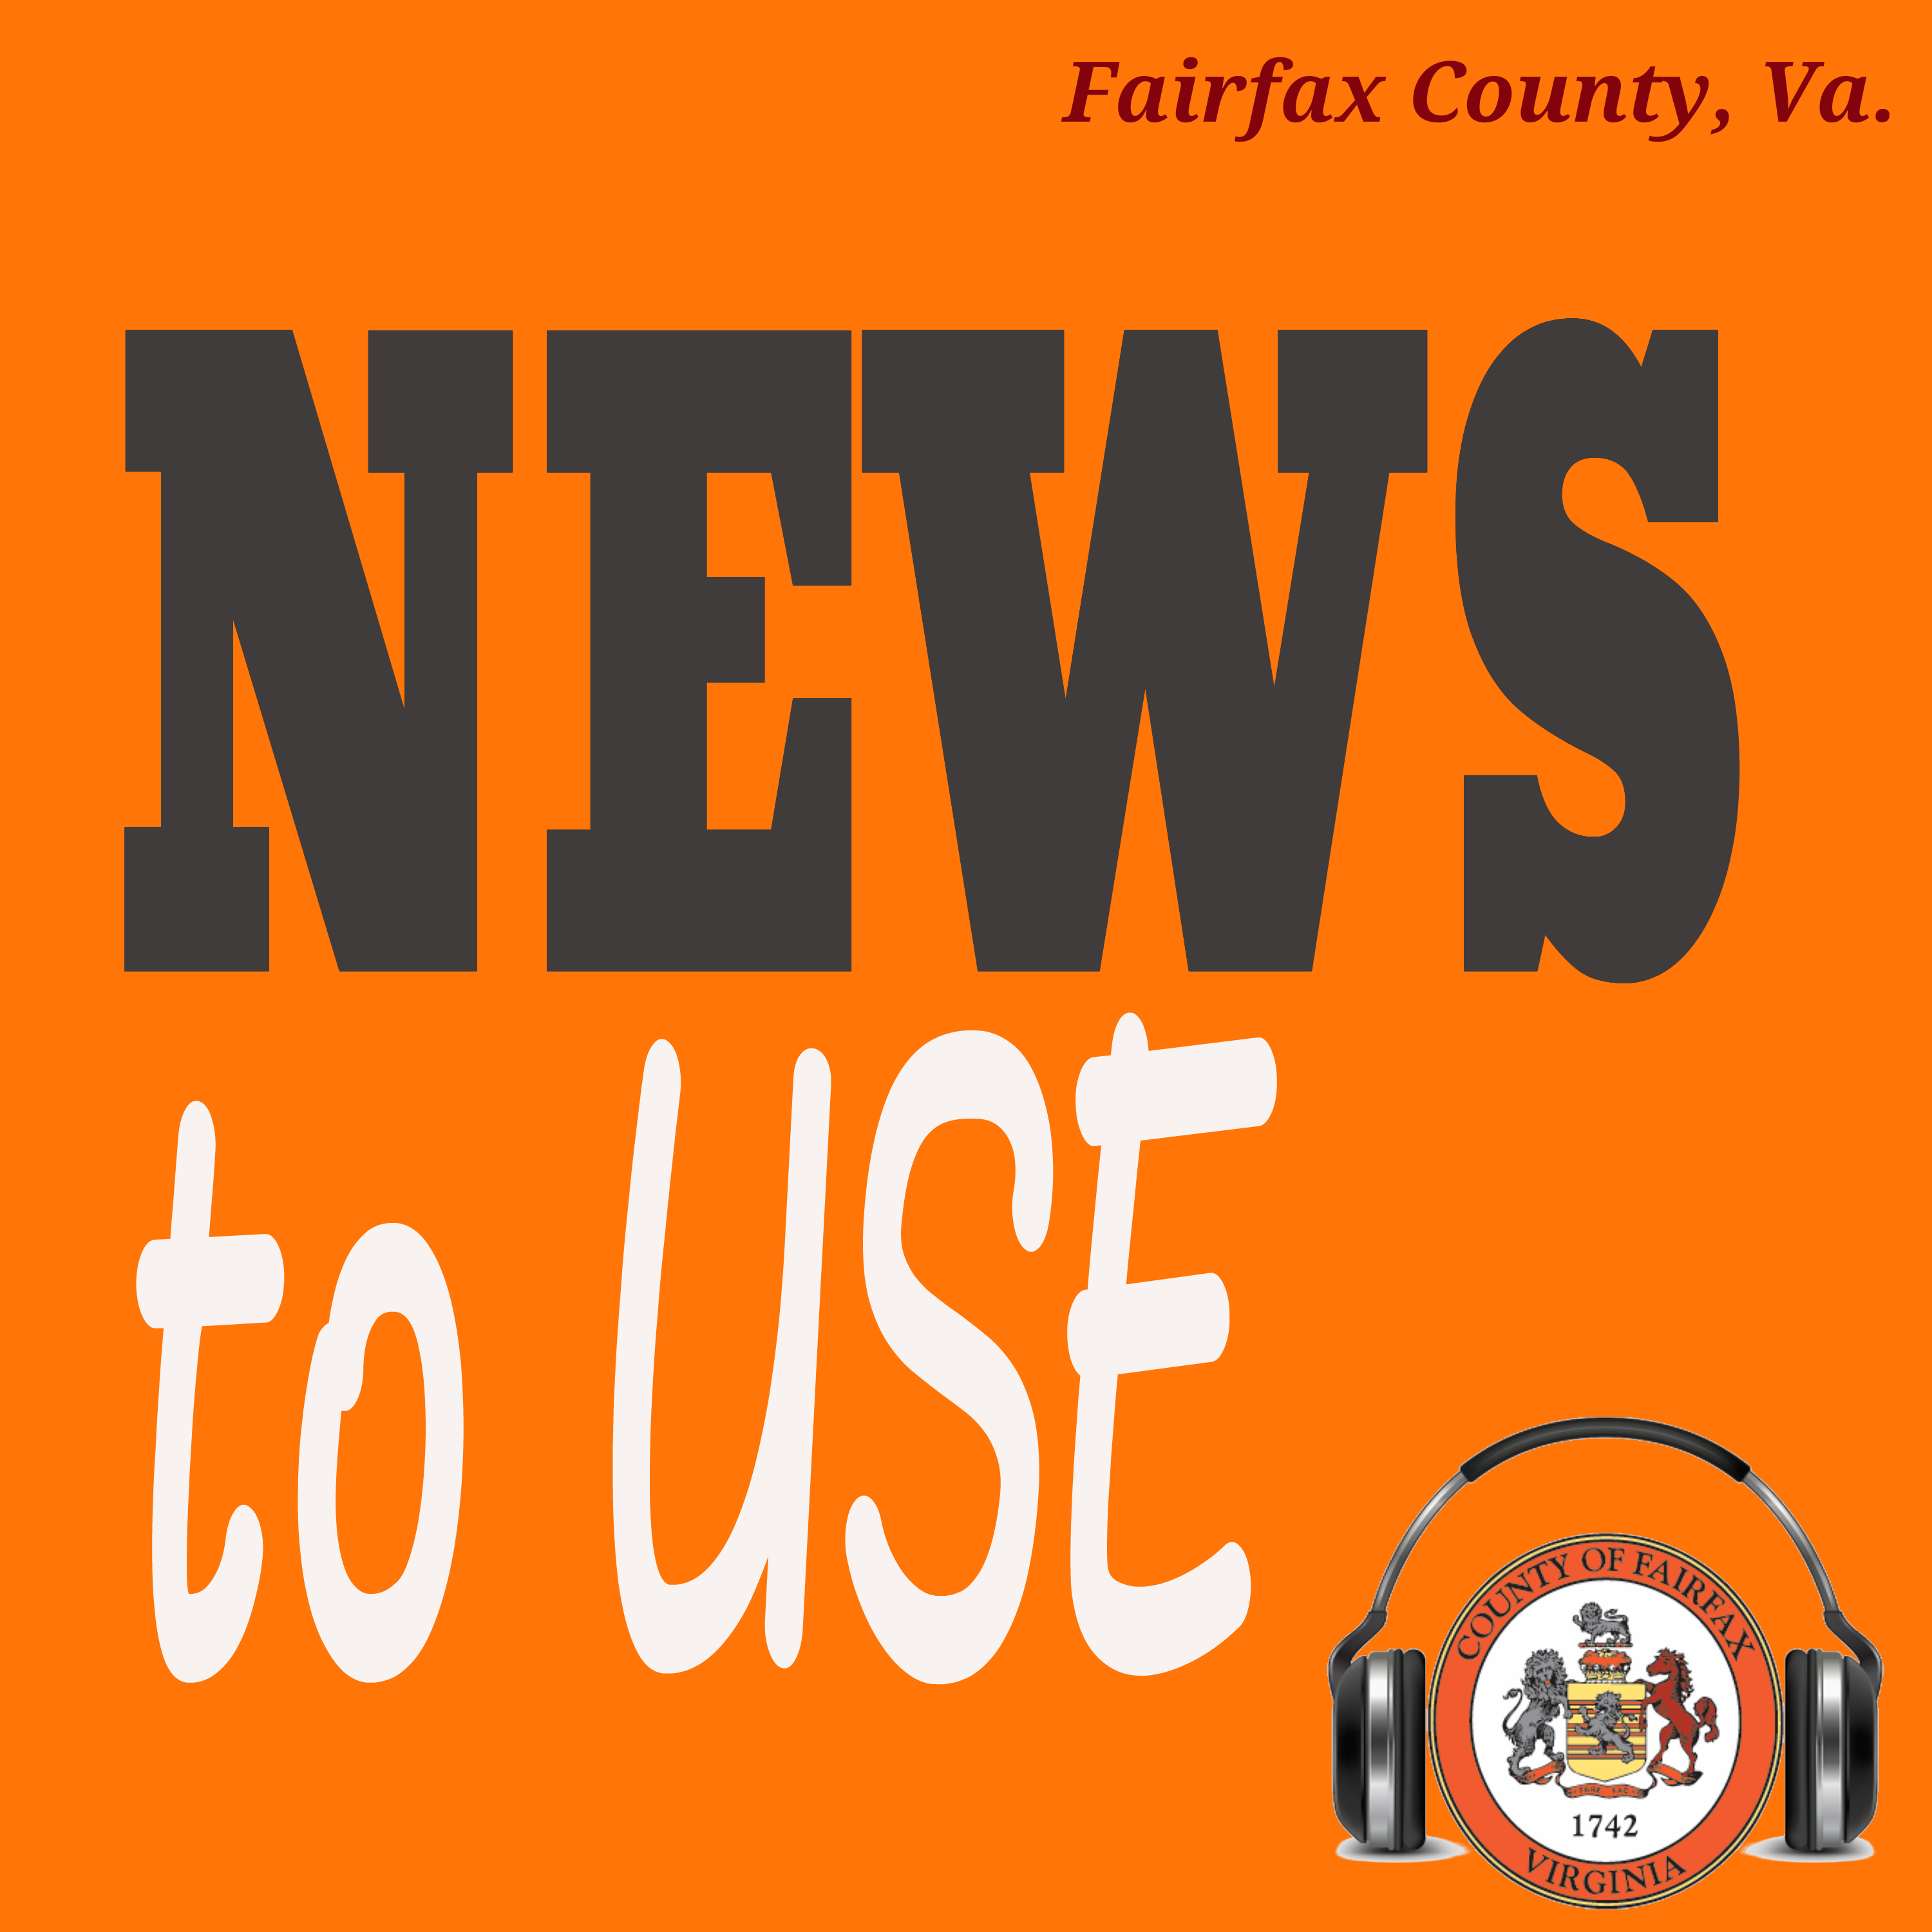 Fairfax County News to Use Podcast